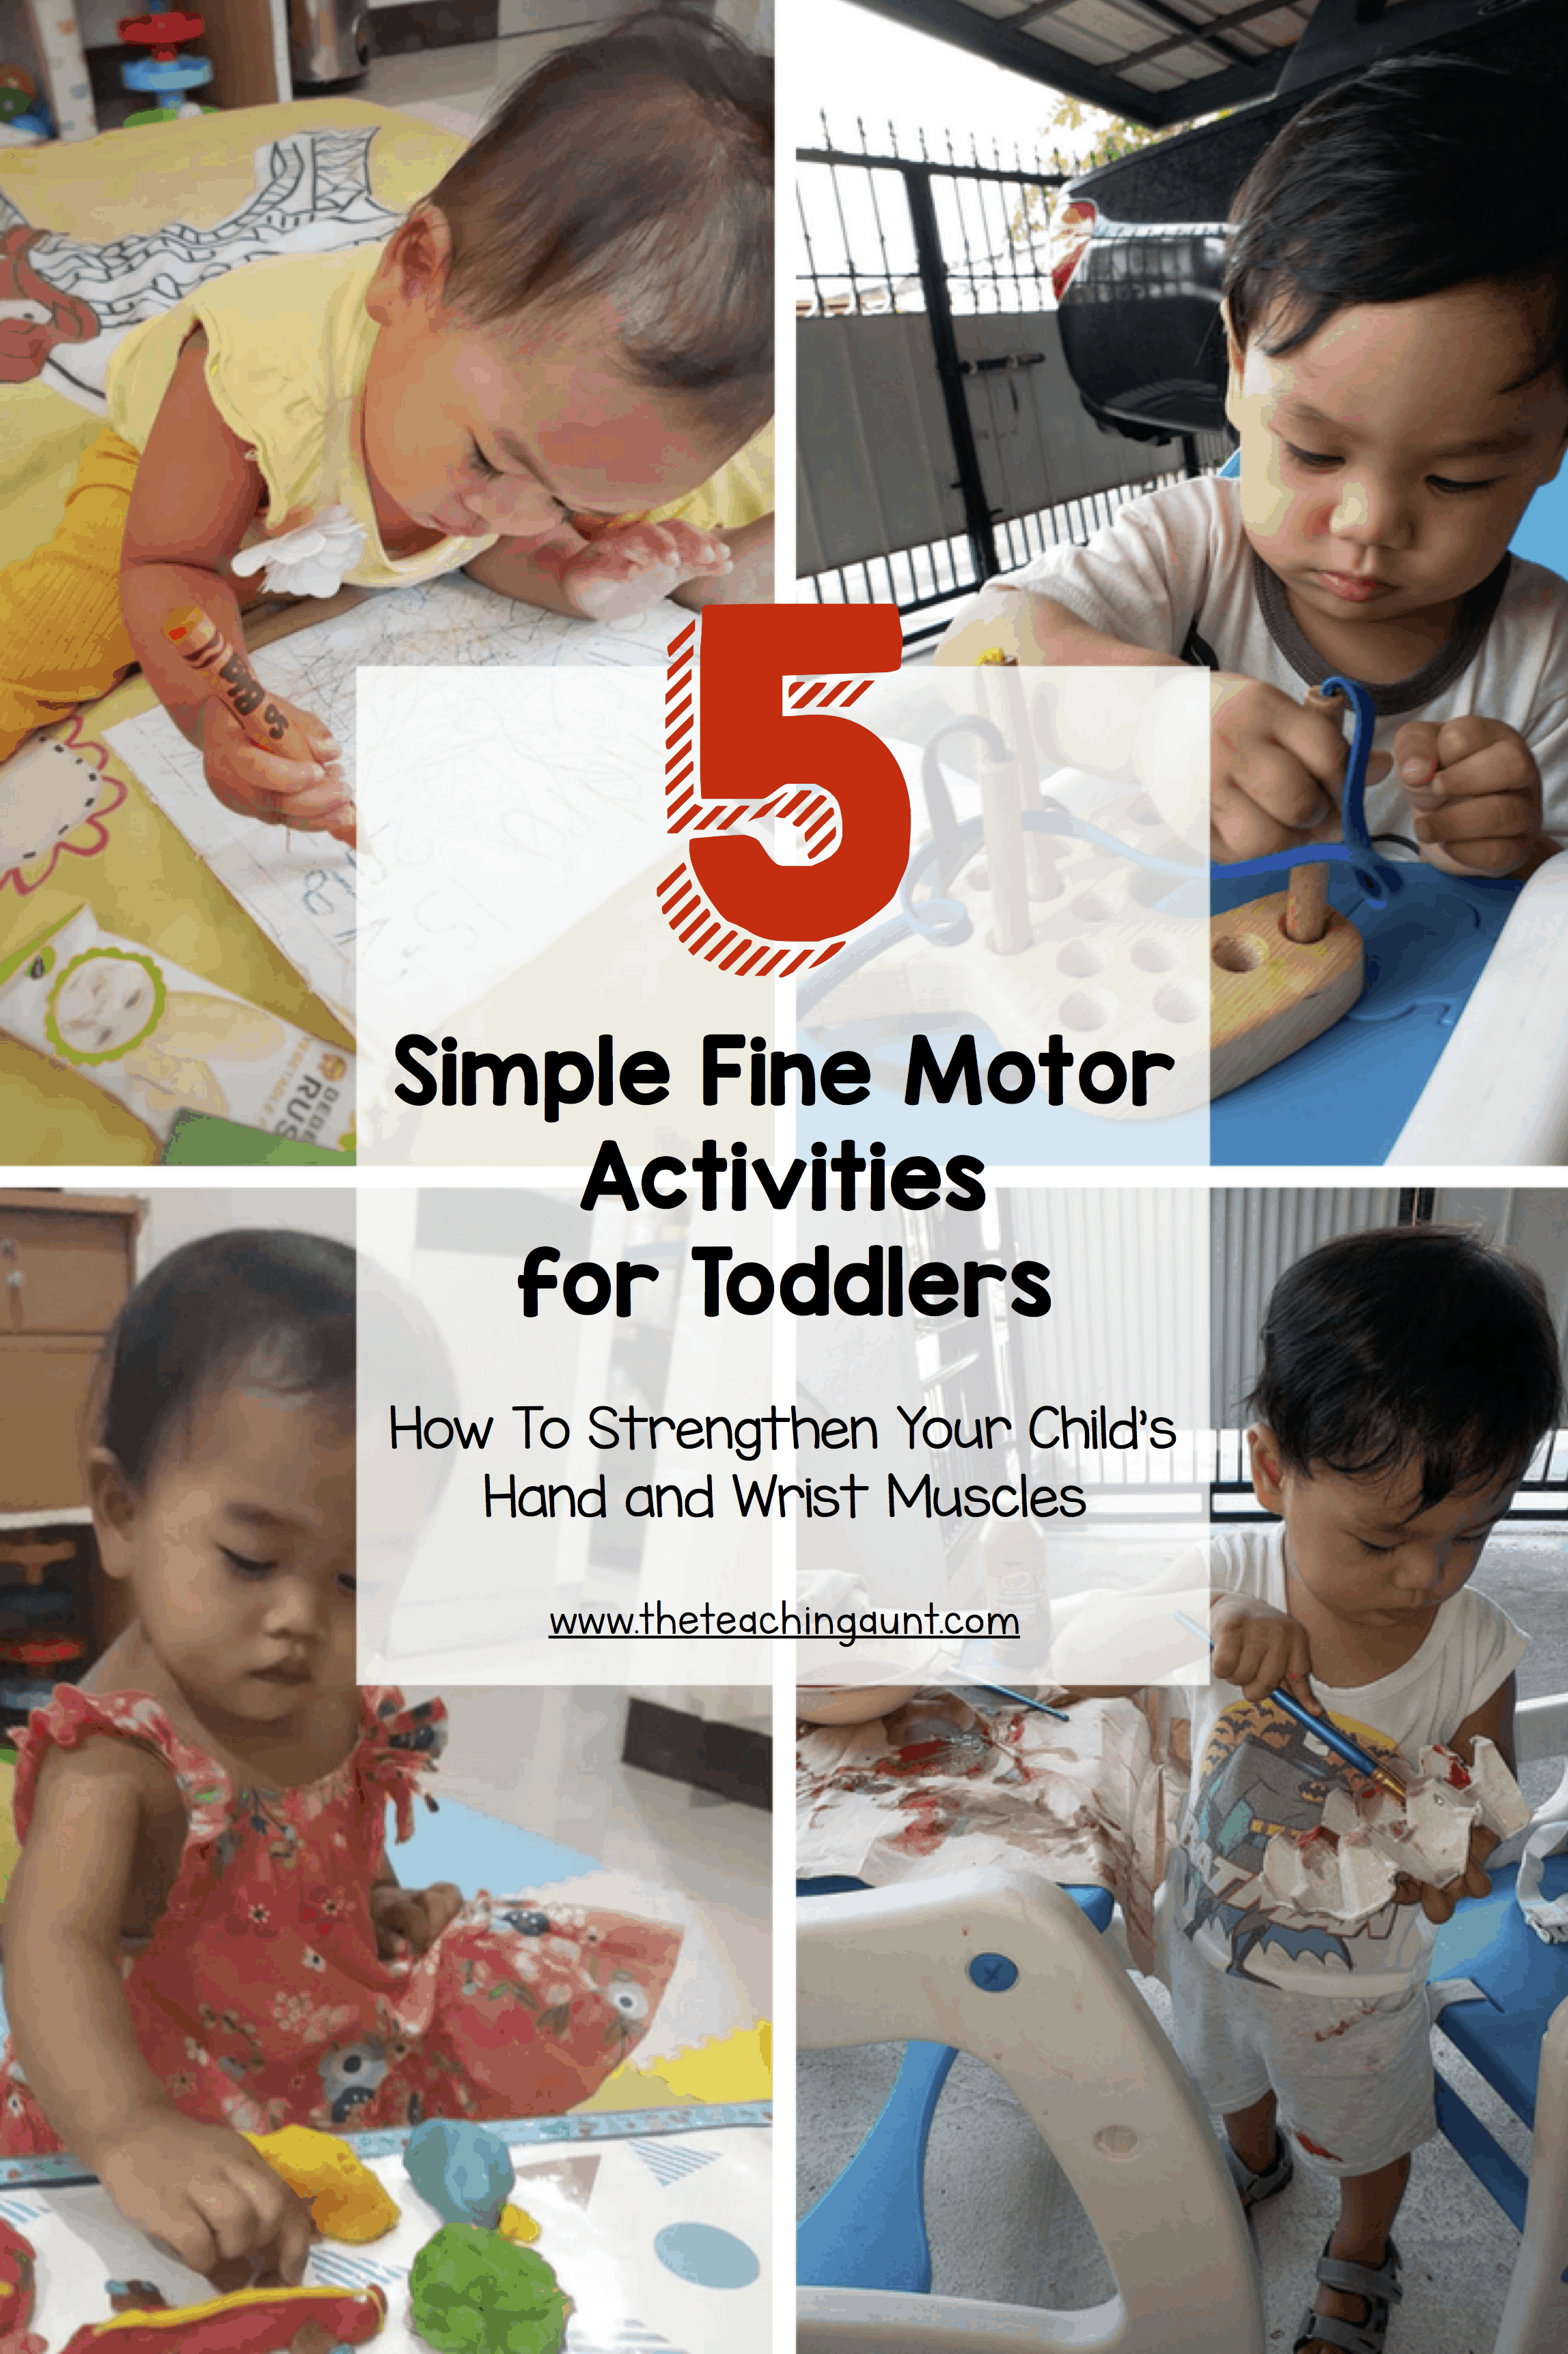 5 Simple Fine Motor Activities For Toddlers